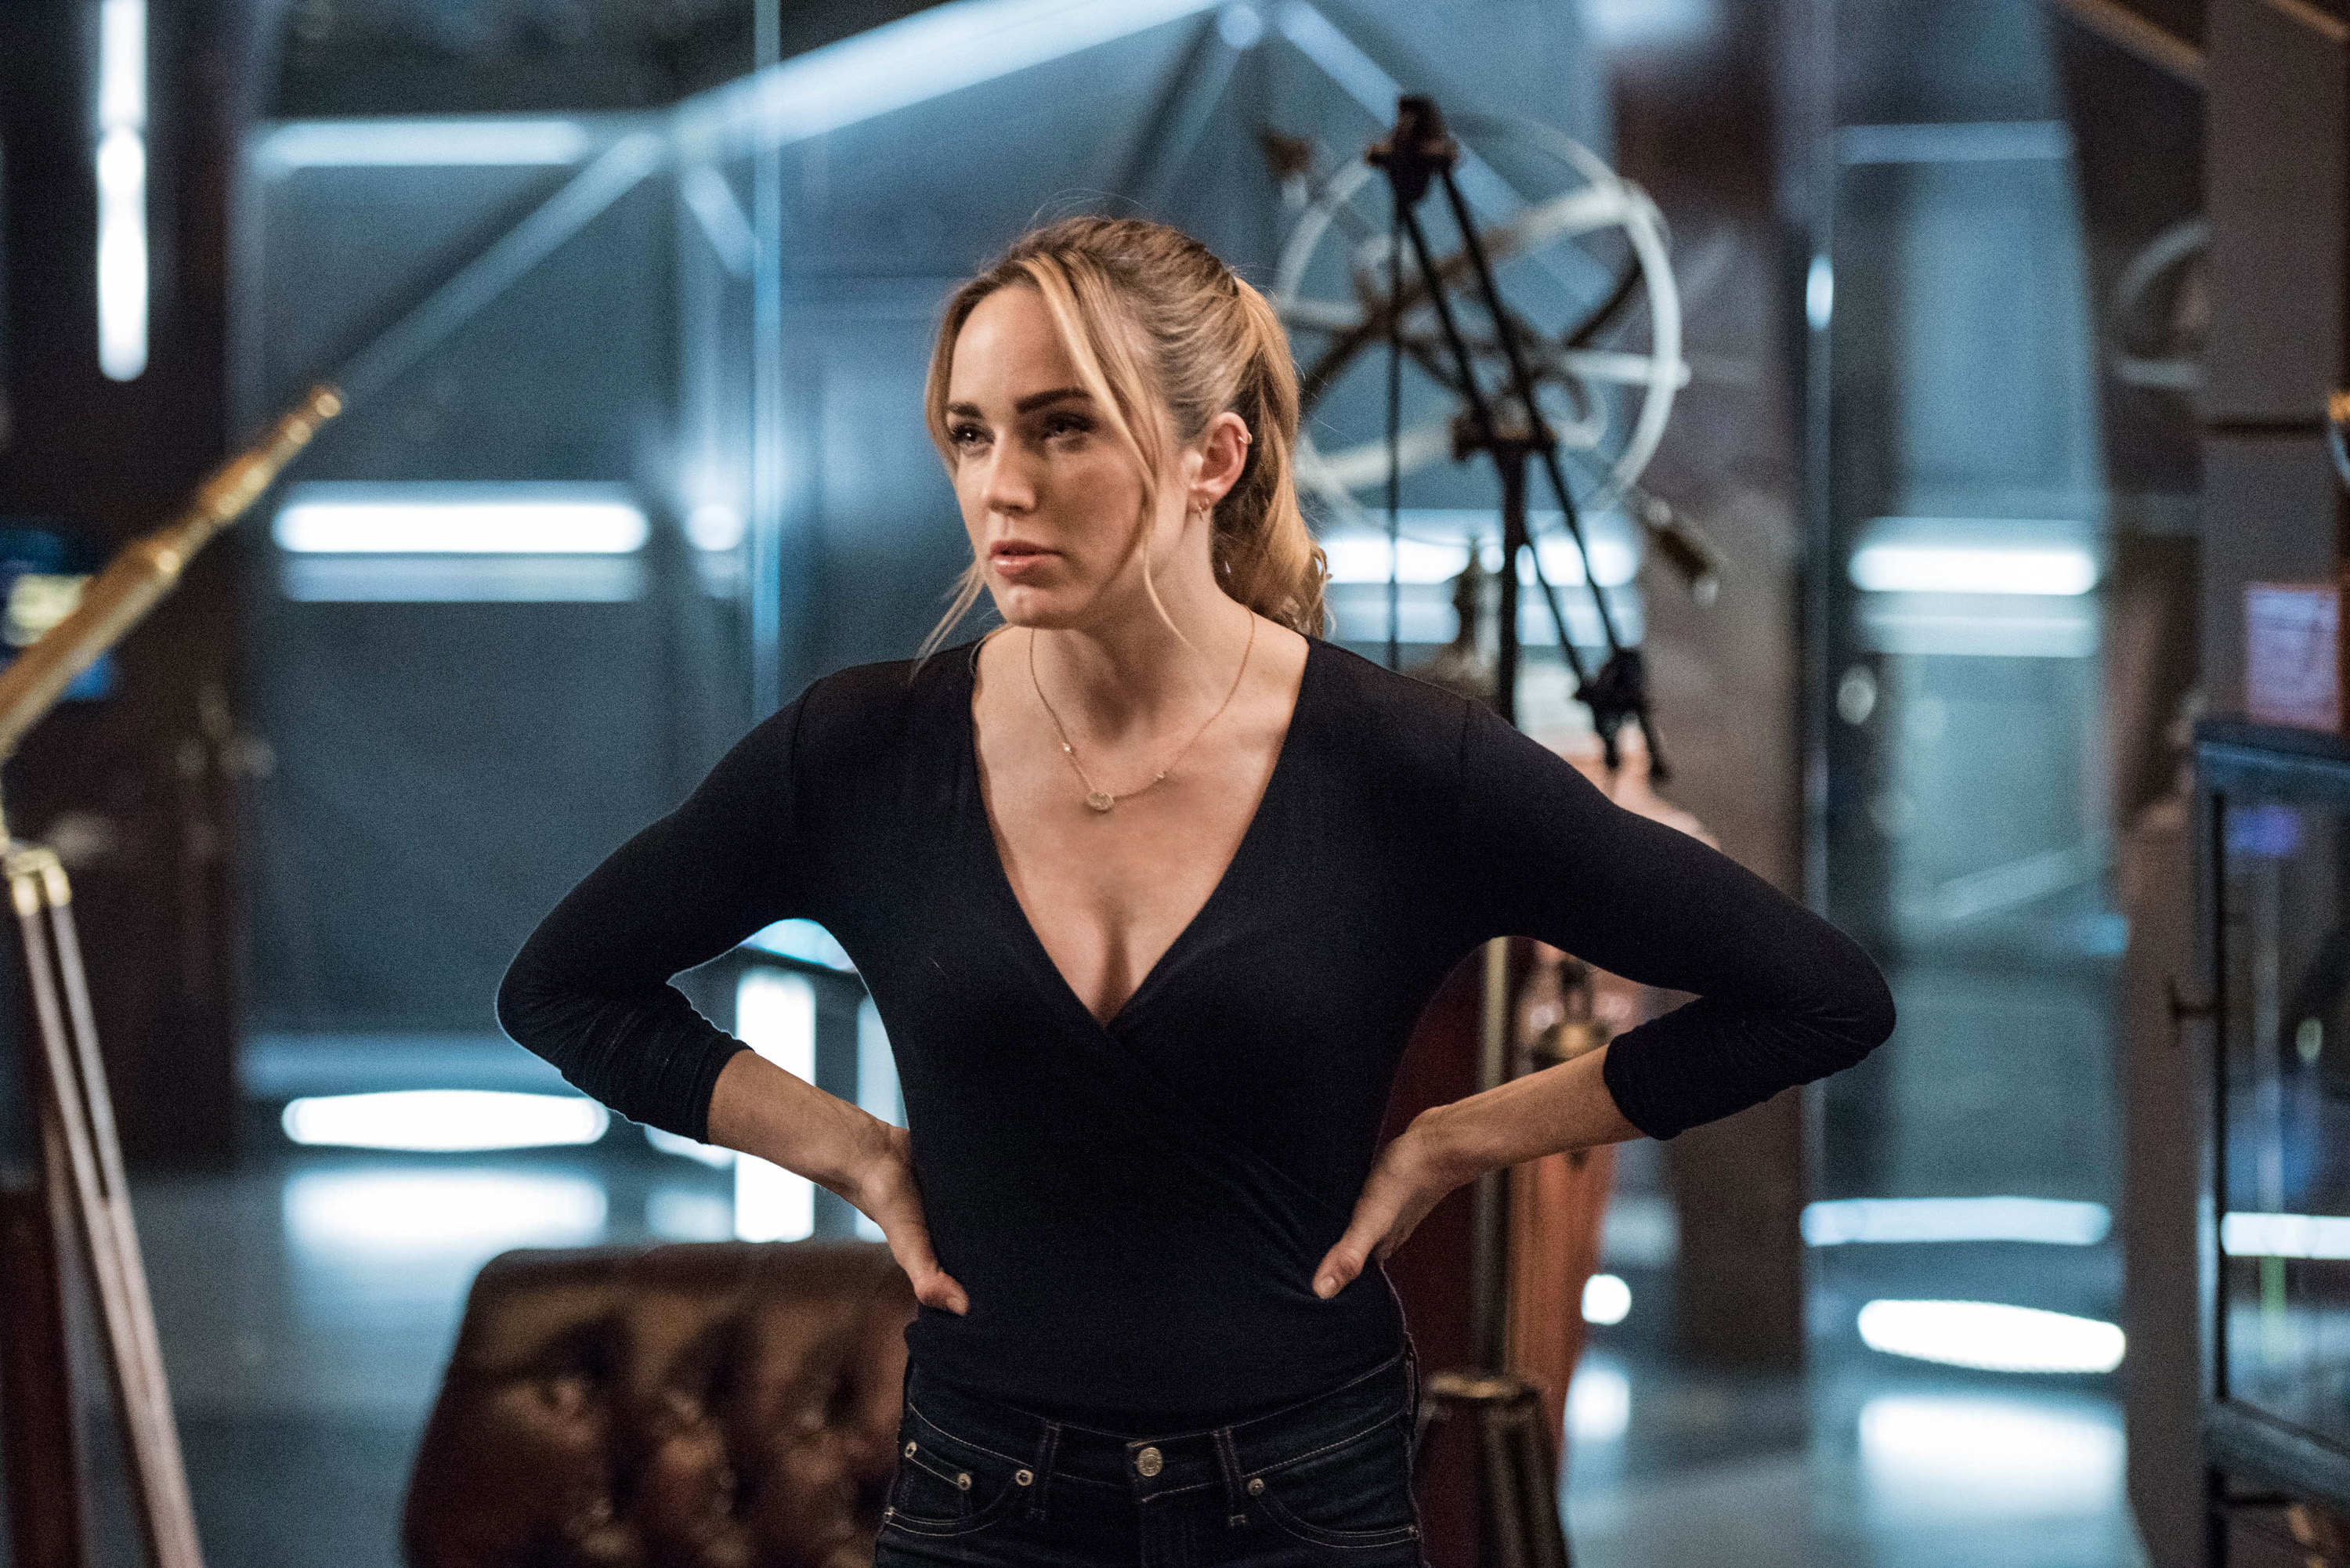 Dc S Legends Of Tomorrow Wallpaper And Background Image: Caity Lotz In Legends Of Tomorrow Season 3 2018, HD Tv